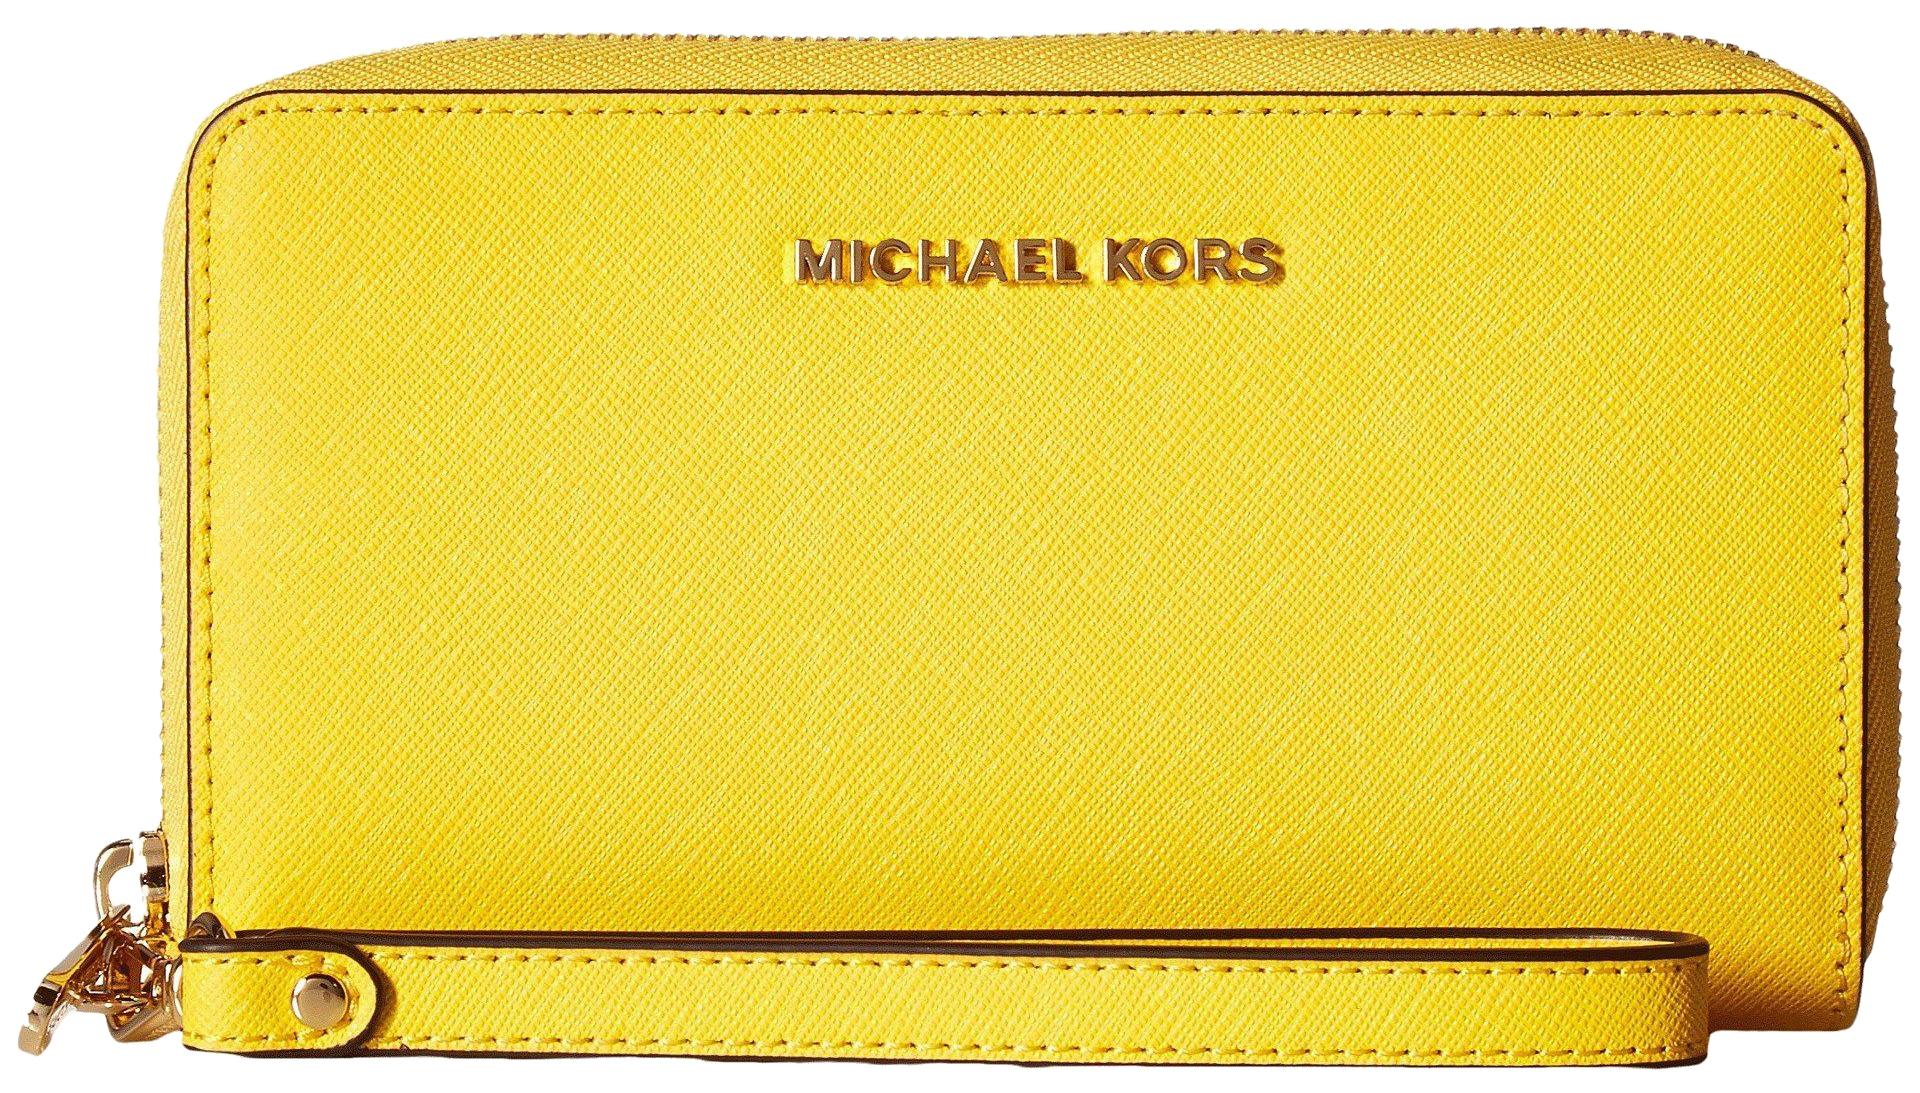 2ce525e212f6 new style michael michael kors wallet sunflower saffiano leather phone  wallet 190049151532 wristlet in sunfloweryellow 6a3ec